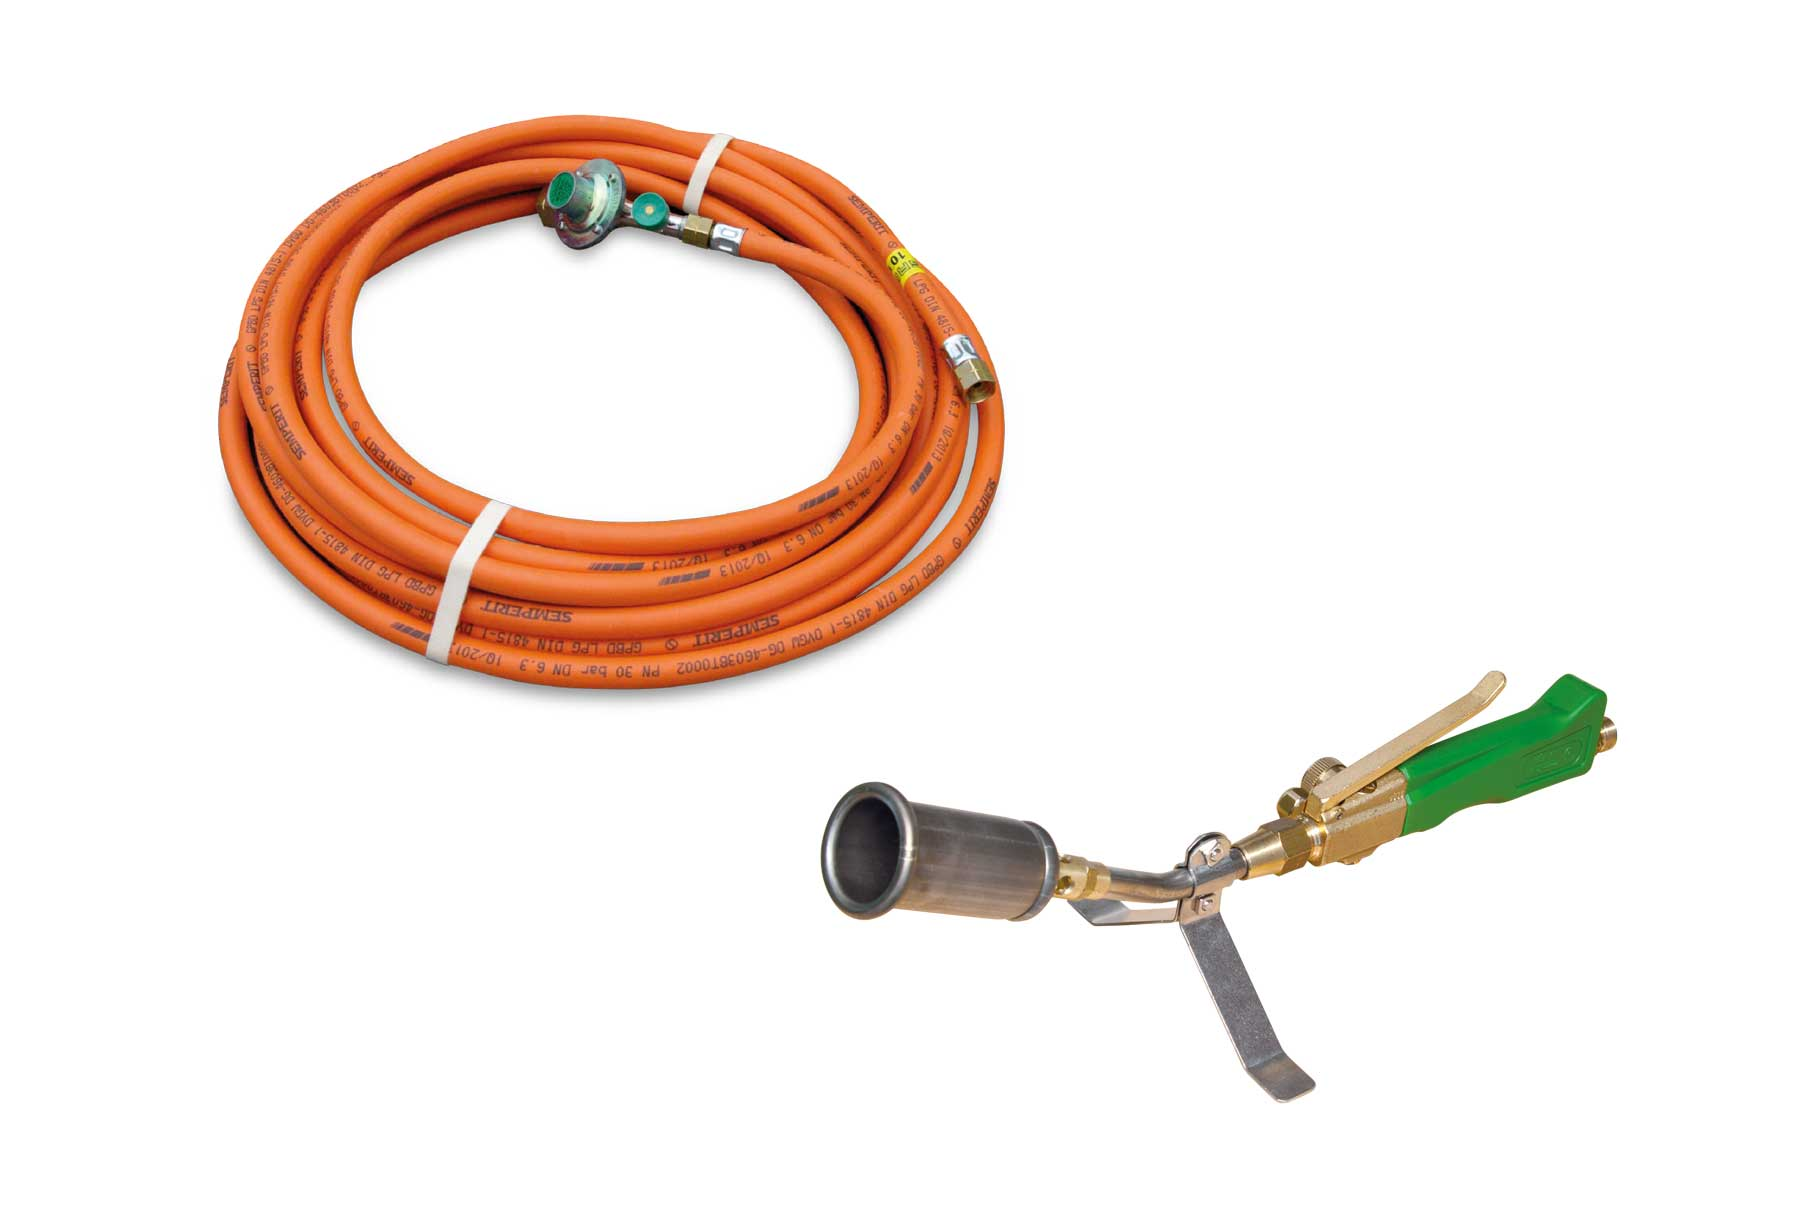 Titan TK 35 Anwärmbrenner mit 10 m HD-Schlauch / Titanium burner for pre-heating TK 35 with 10 m high pressure hose